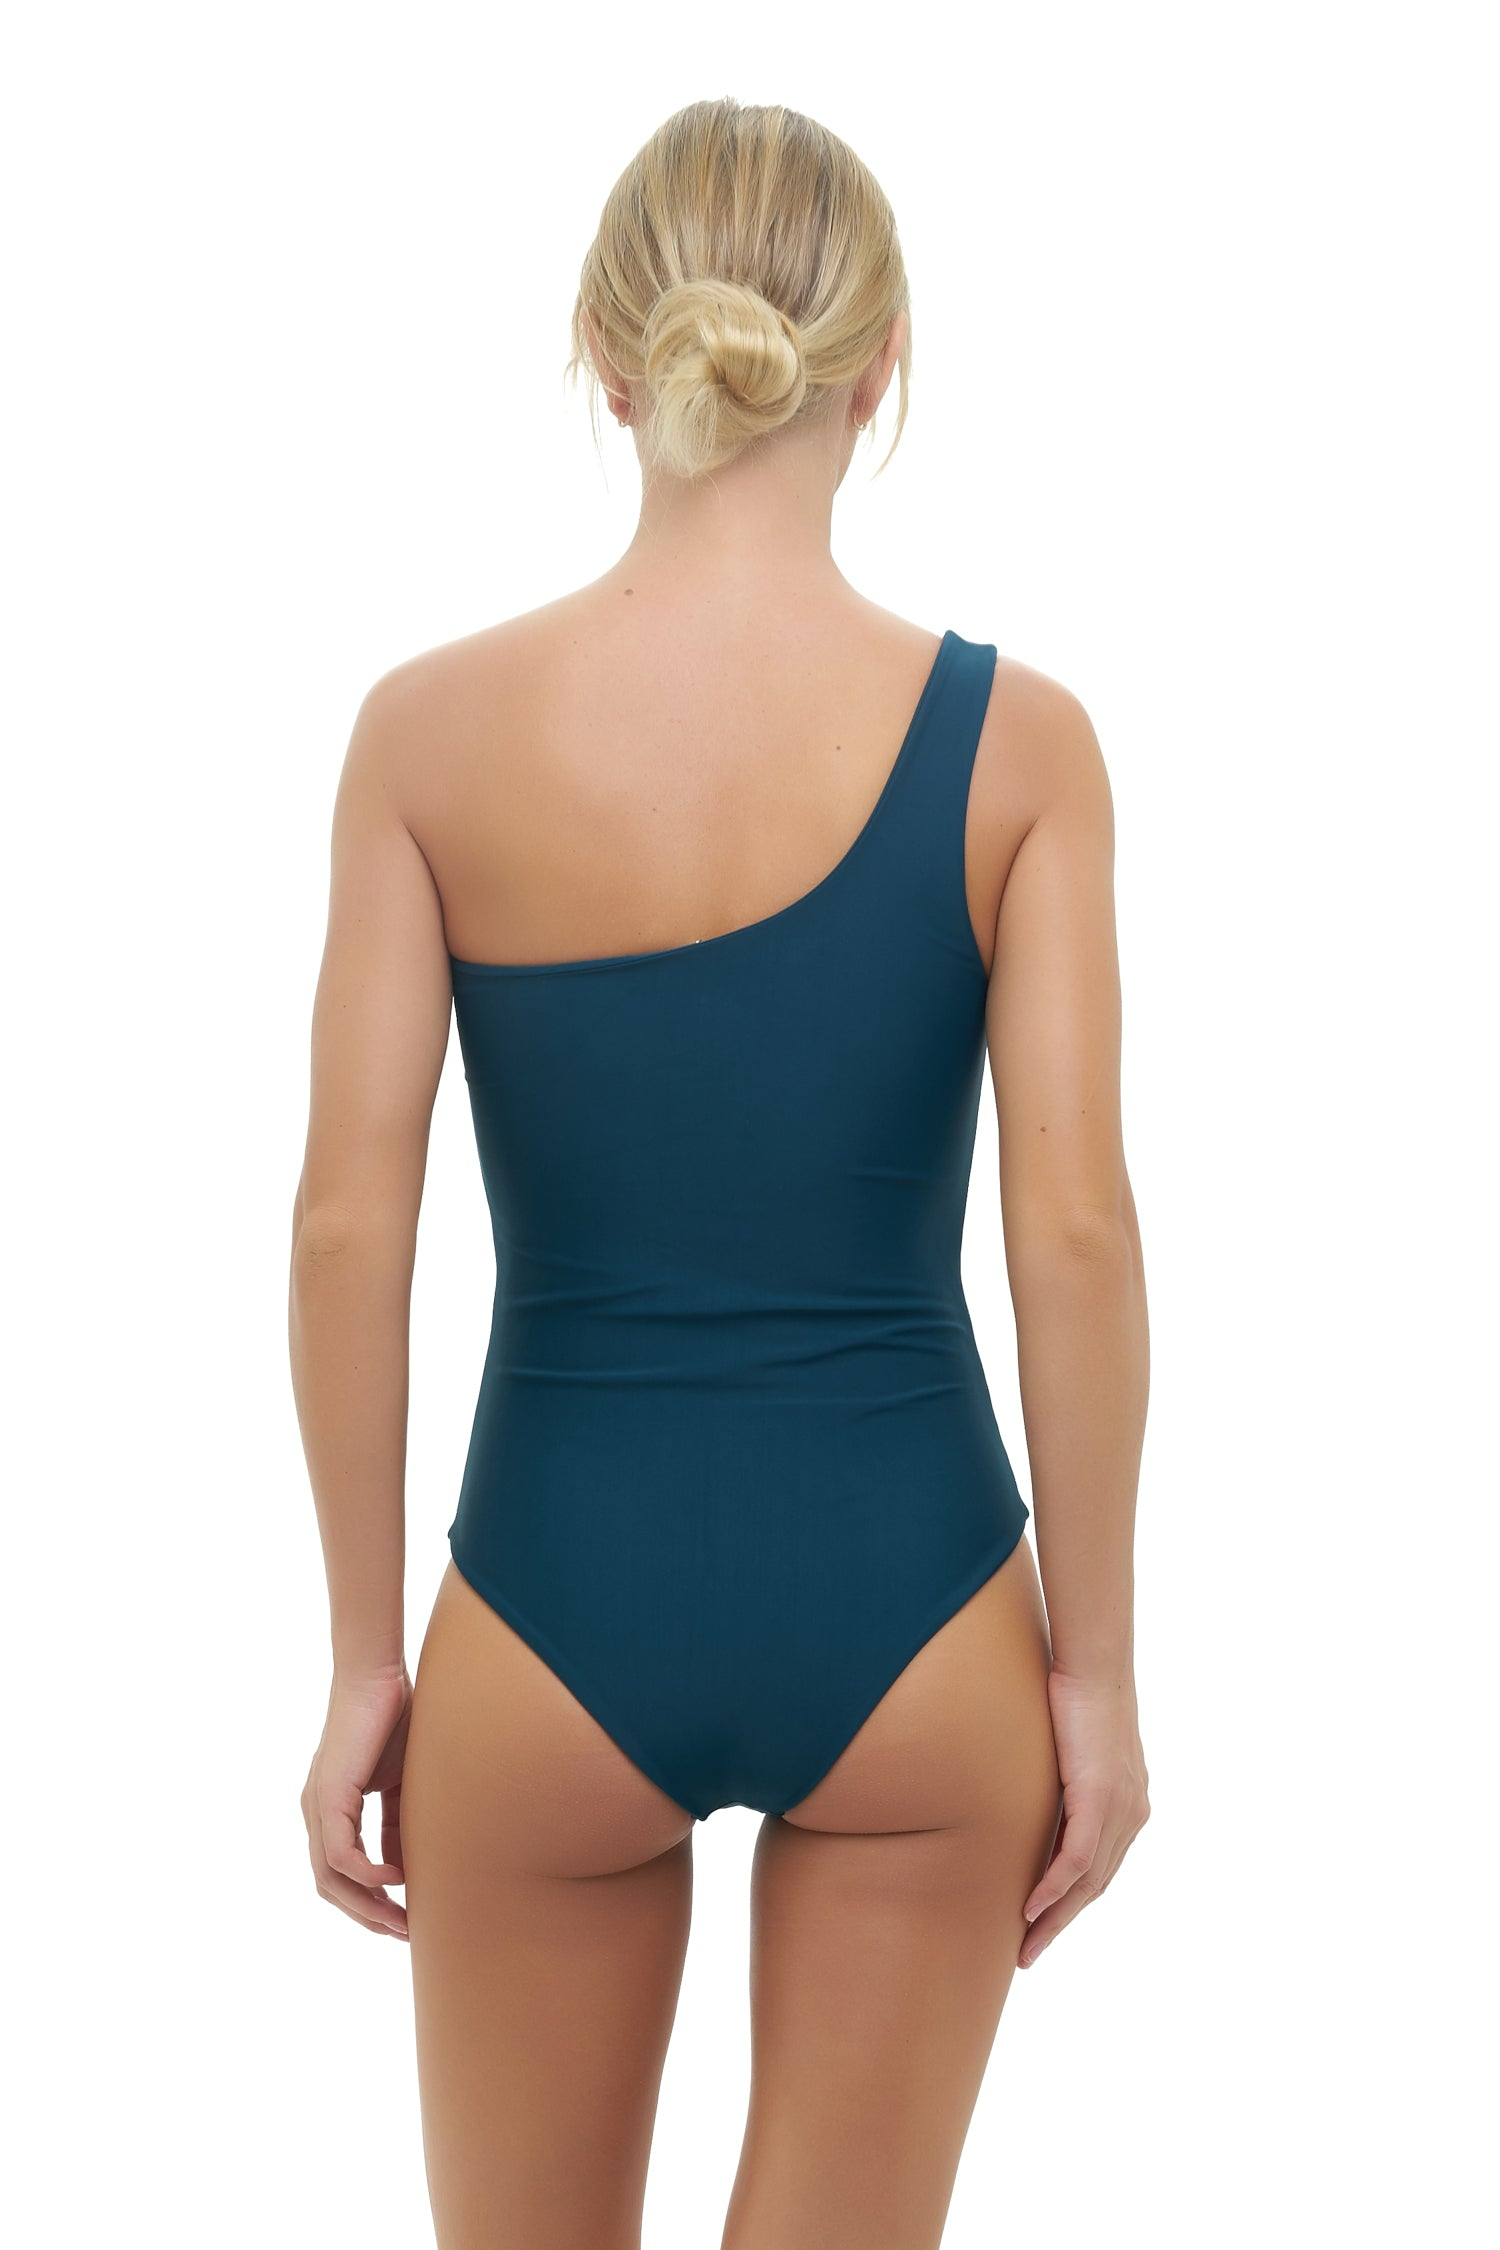 Storm Swimwear - Cinque Terre - One shoulder One Piece in Jungle Green